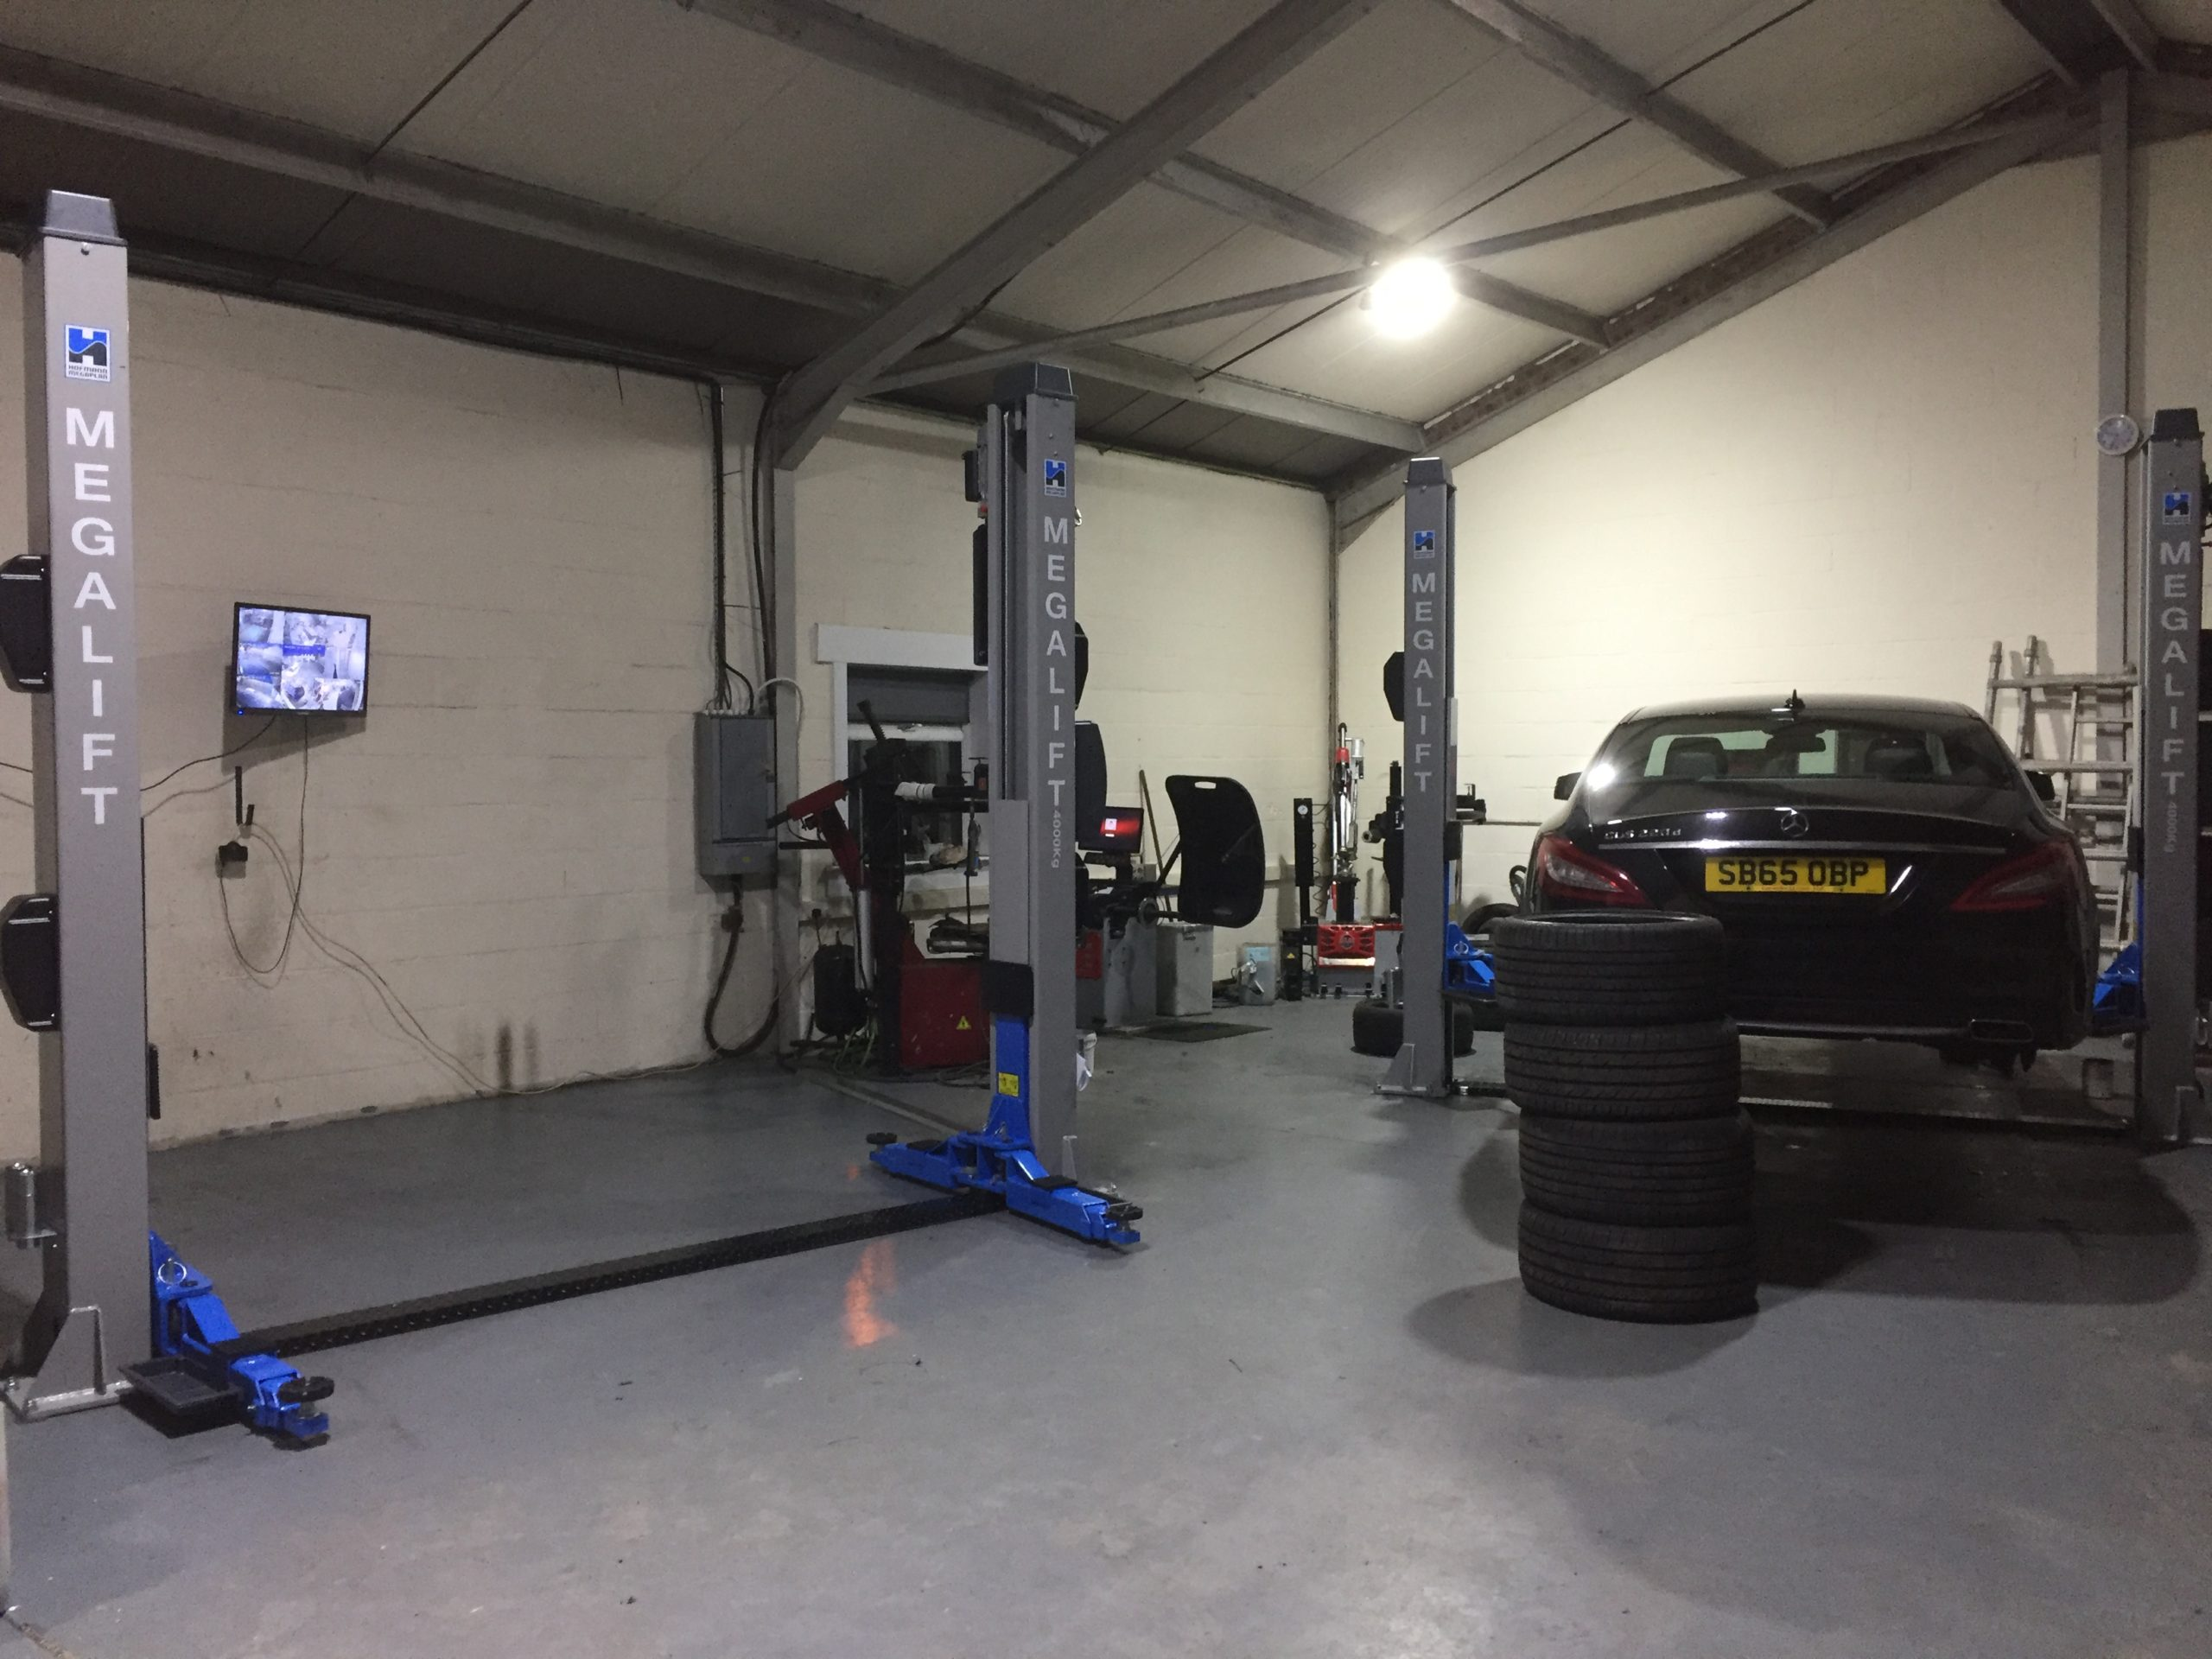 Our install team performed a fitting of two new megalift 4000-3 vehicle lifts at Carrick Alloys in Prestwick, to compliment the new Atlas levelless tyre changer and balancer package they recently purchased.